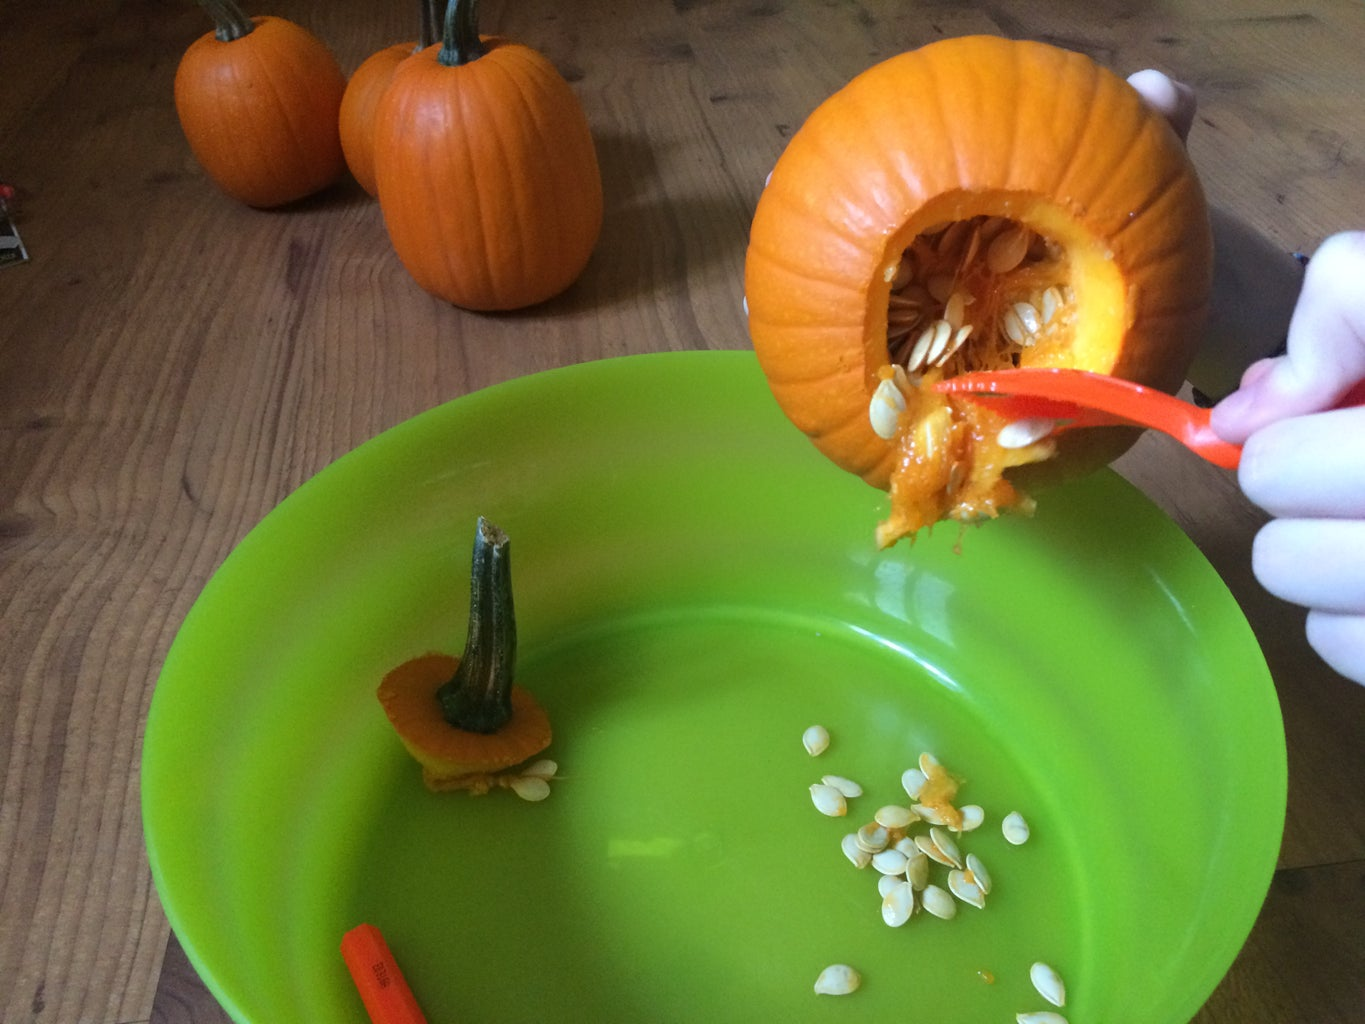 Cleaning Out the Pumpkins